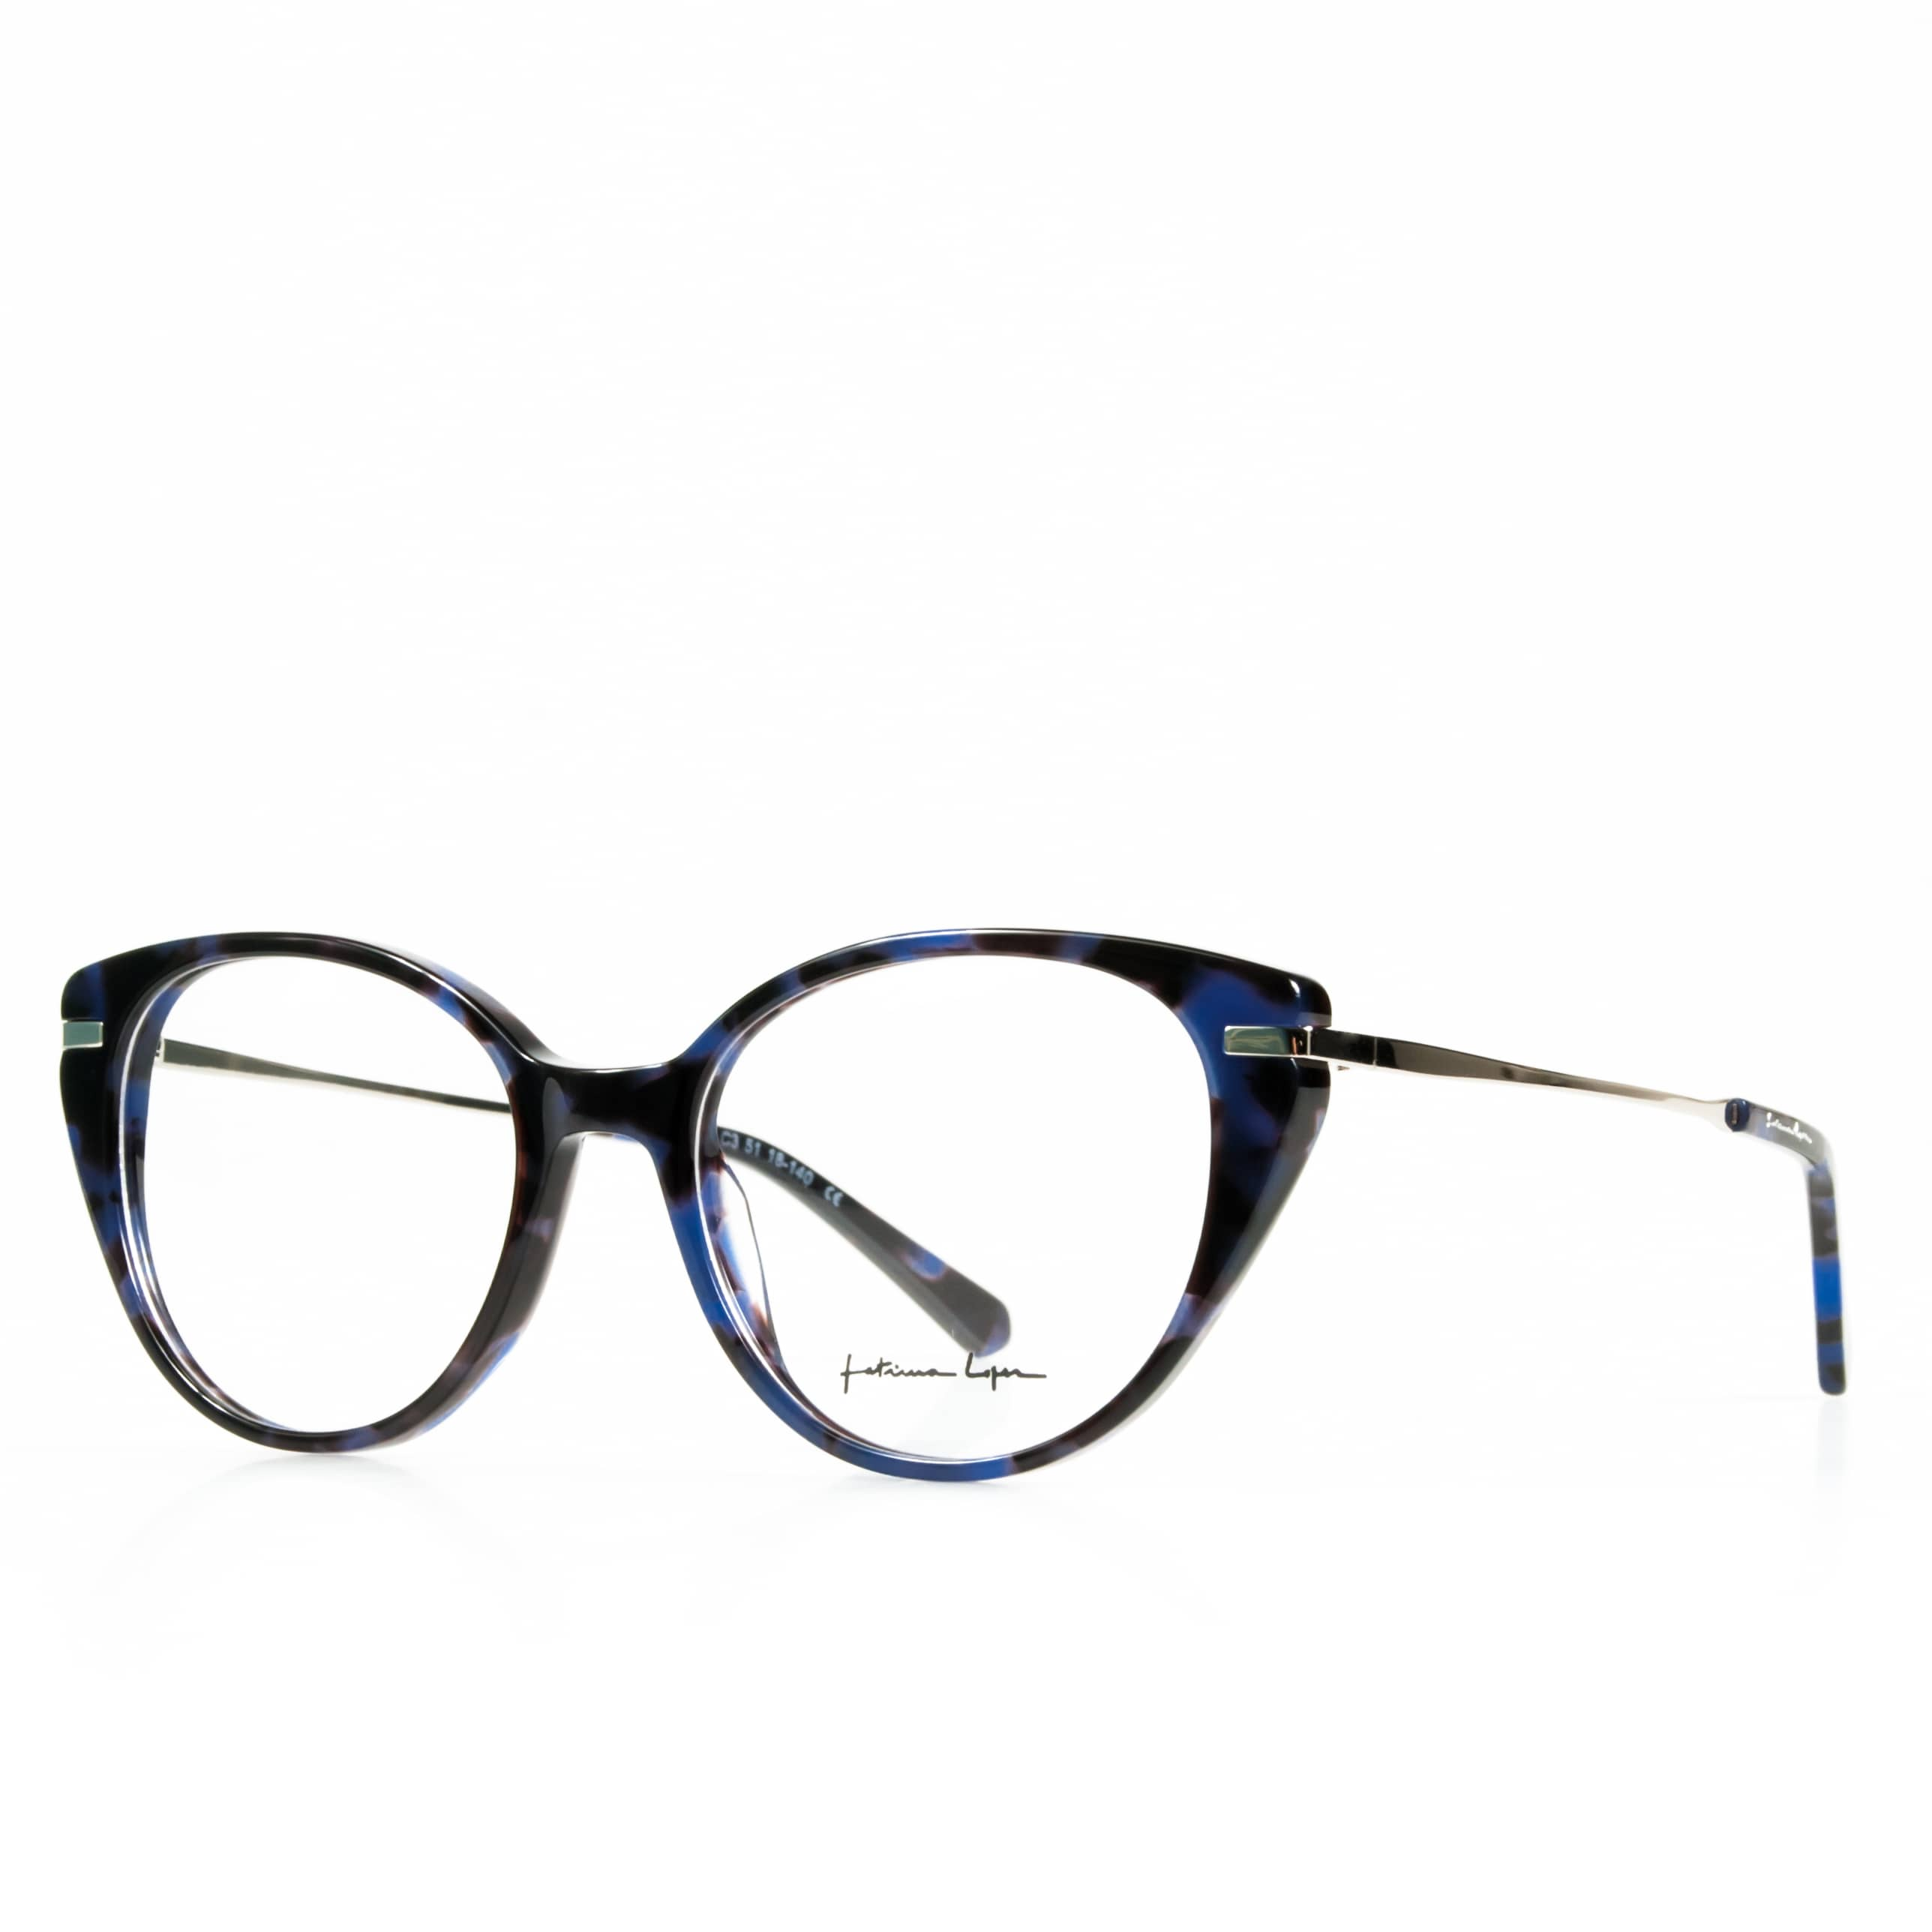 GlassesFL52150 C3 0